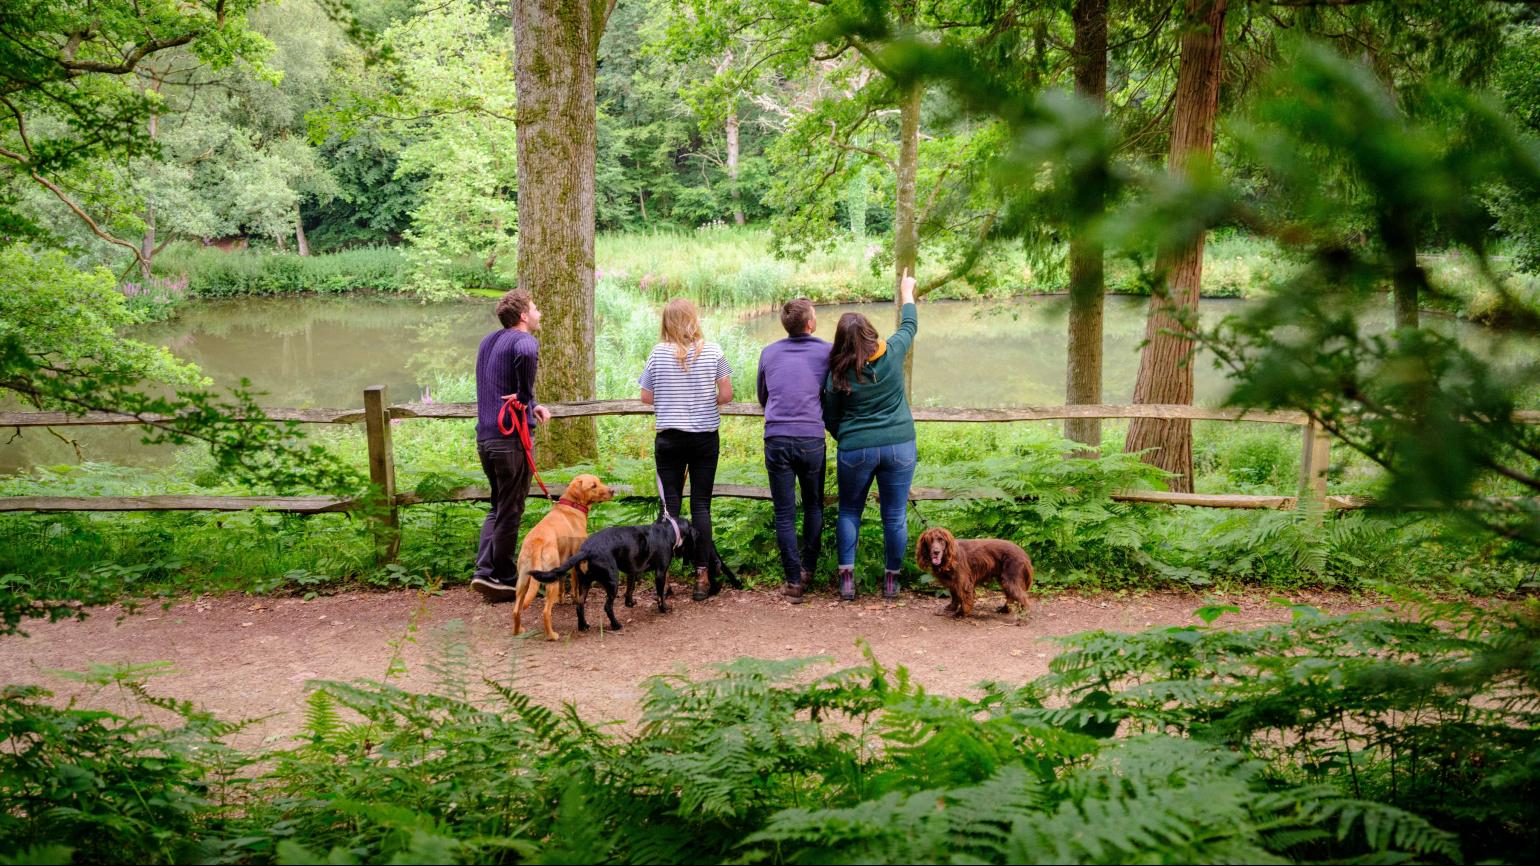 A group of people admire the view of Wakehurst whilst their dogs patiently sit next to them